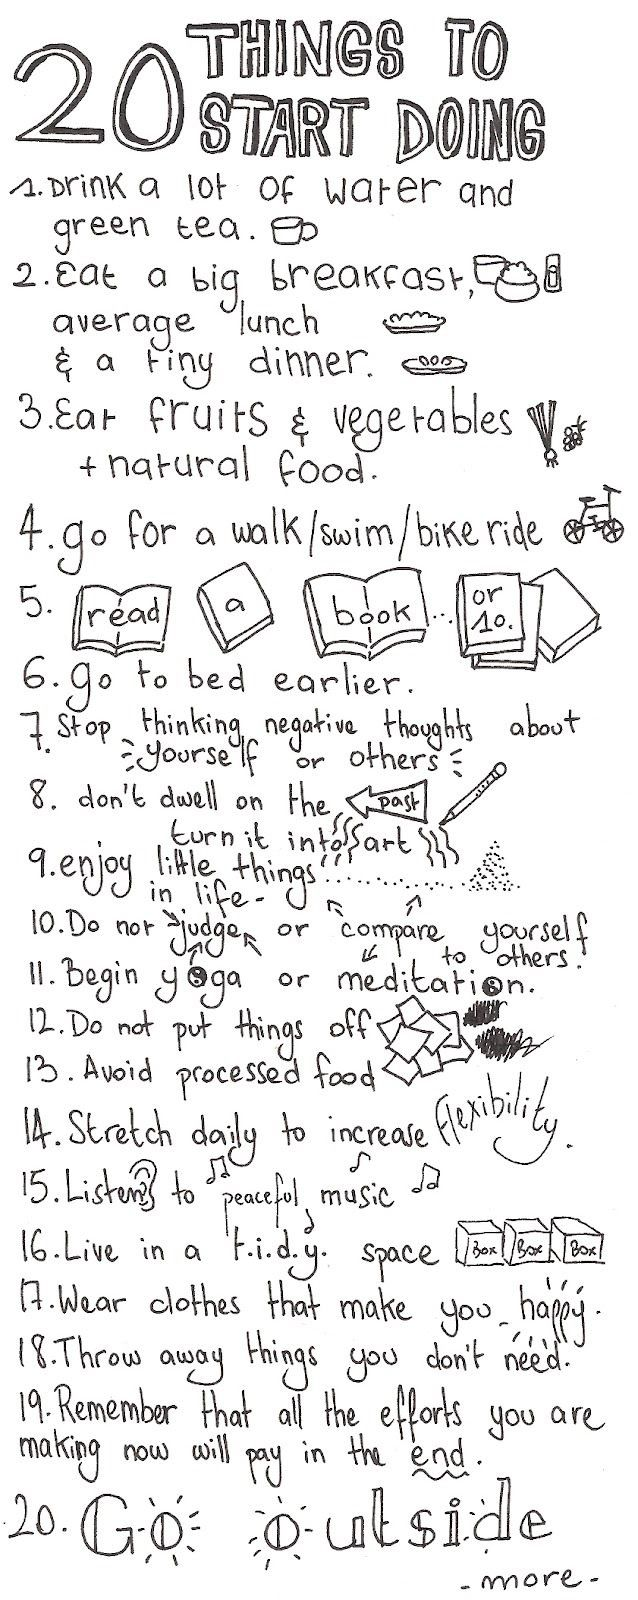 Things that I must start doing